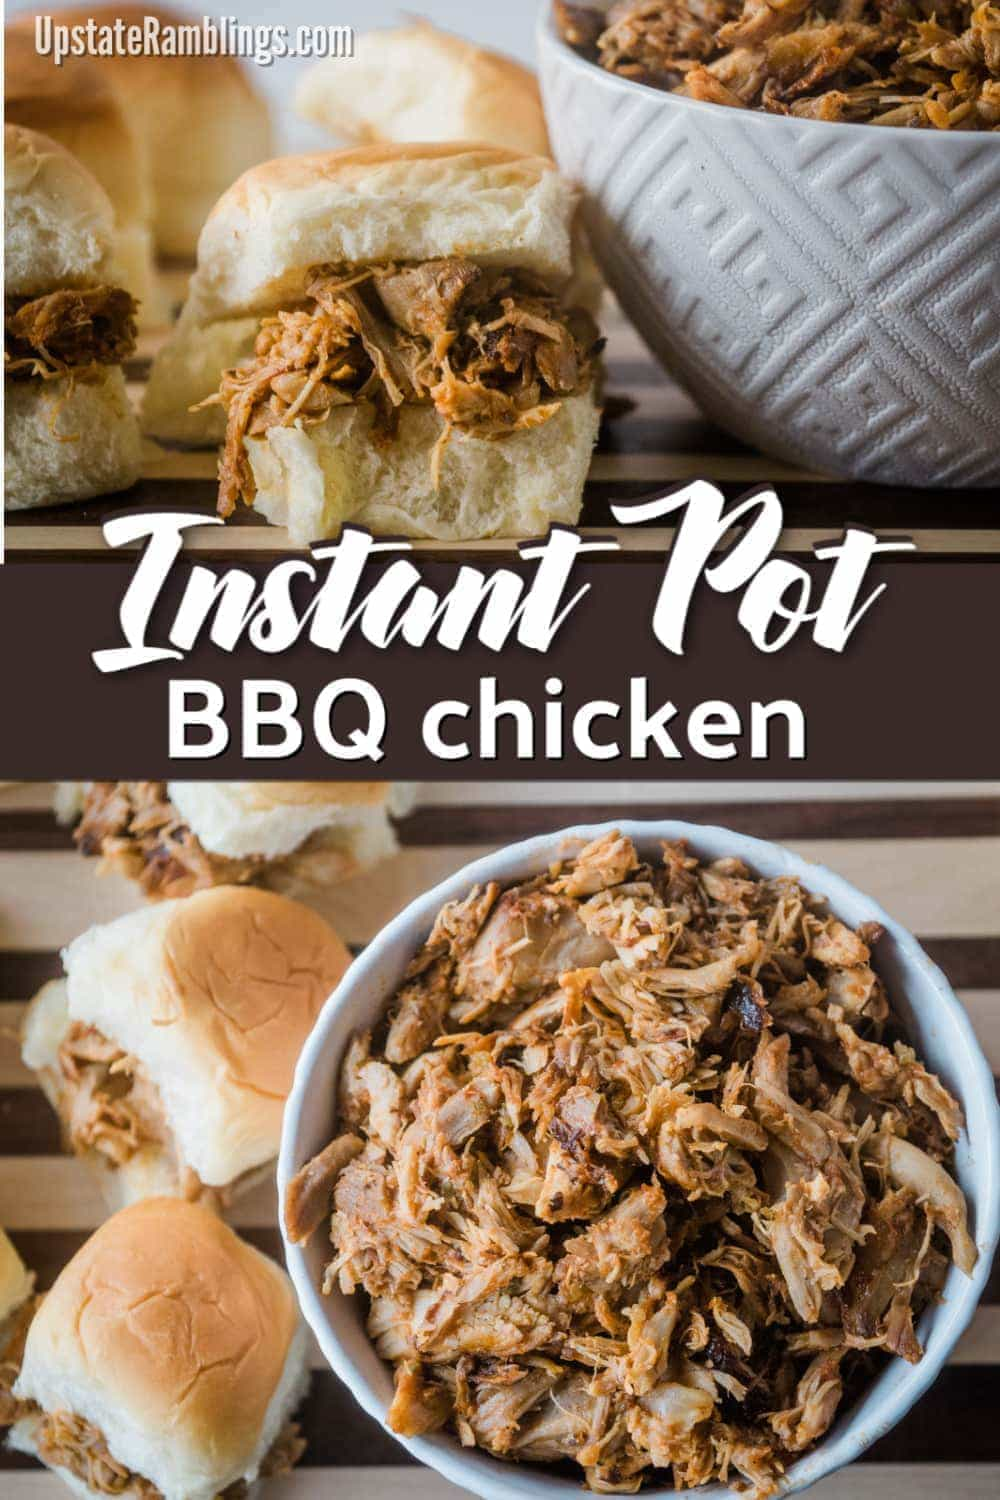 This easy recipe makes perfectly shredded Instant Pot BBQ chicken in your pressure cooker. With four basic ingredients and only 30 minutes you can have summer BBQ flavor anytime! Perfect for sandwiches, sliders or weekly meal prep. #InstantPot #BBQ #chicken